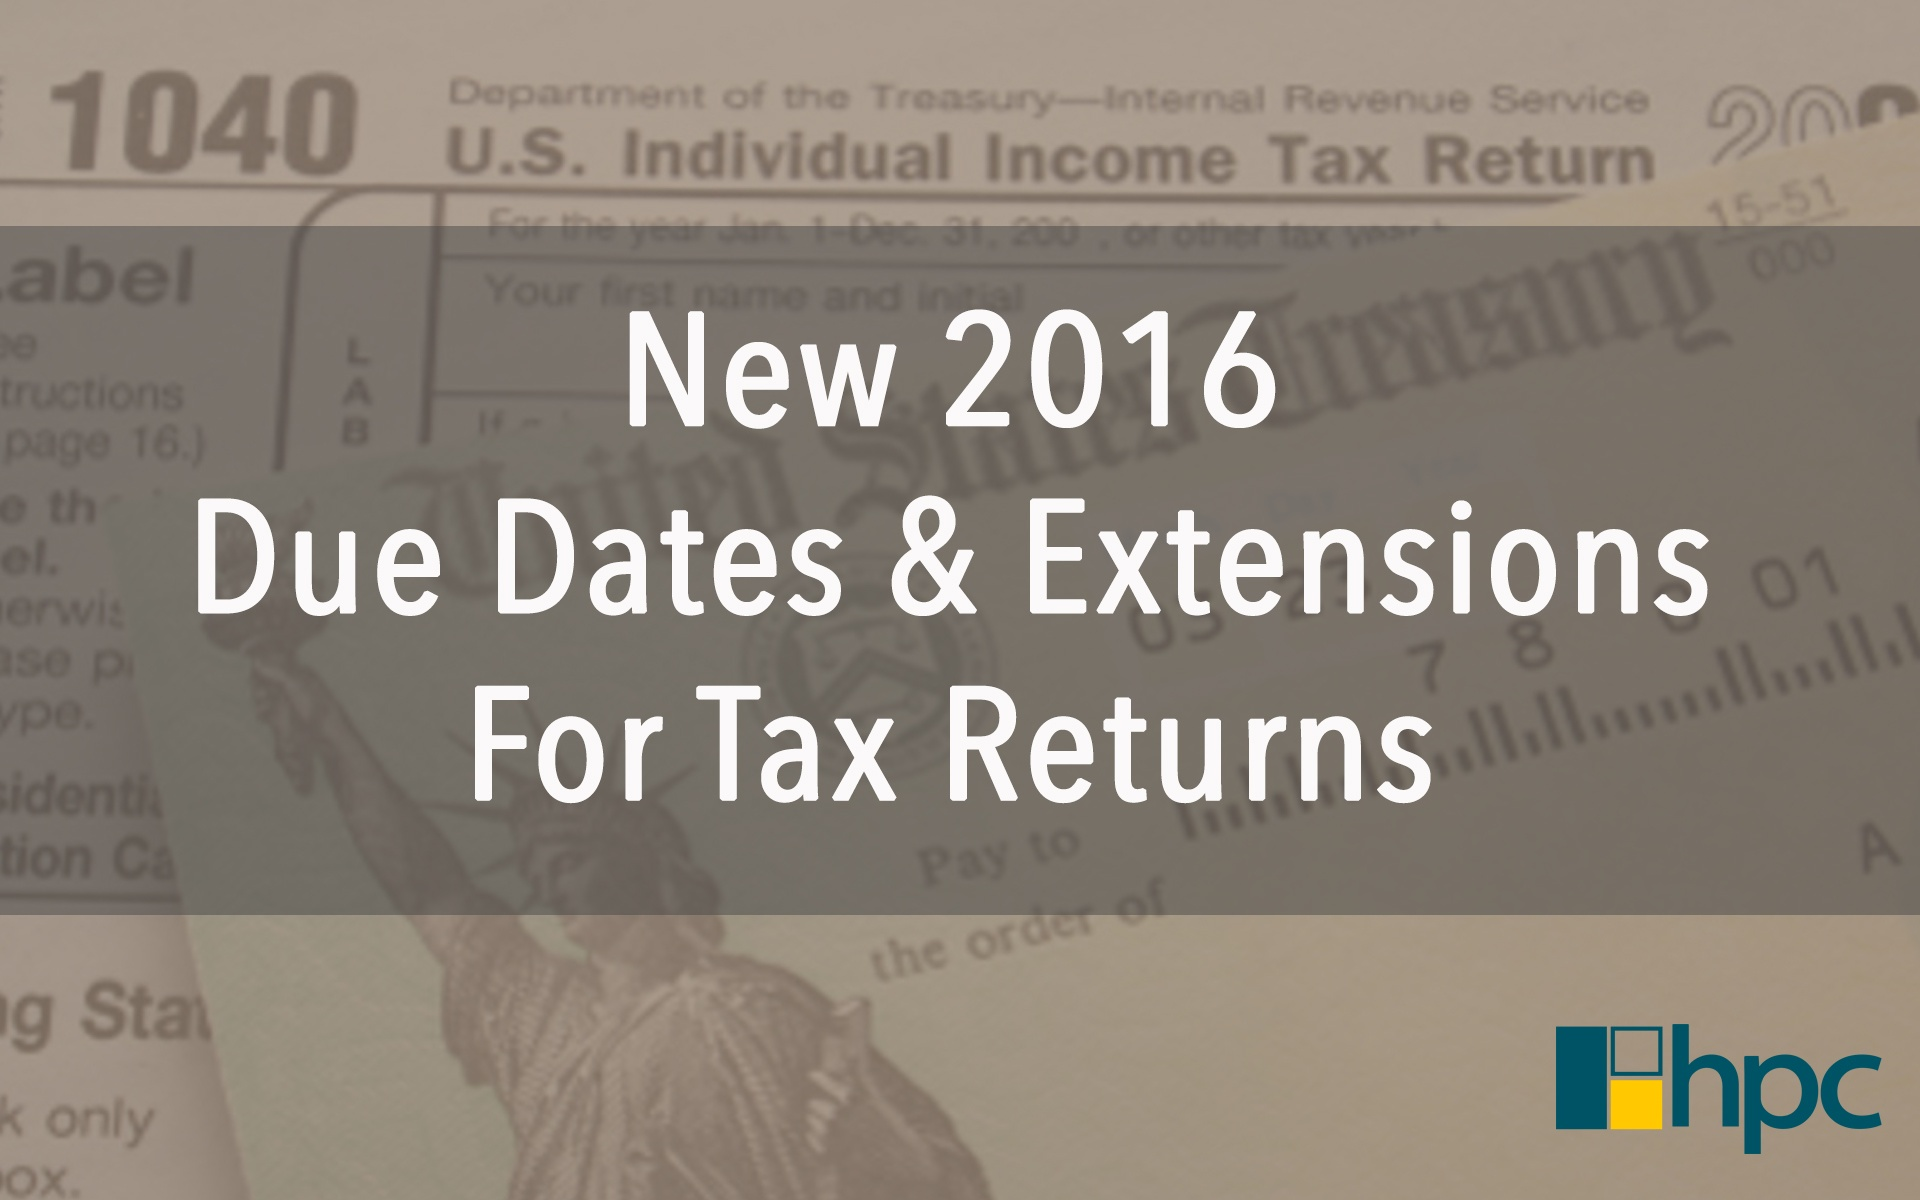 Tax extension due date